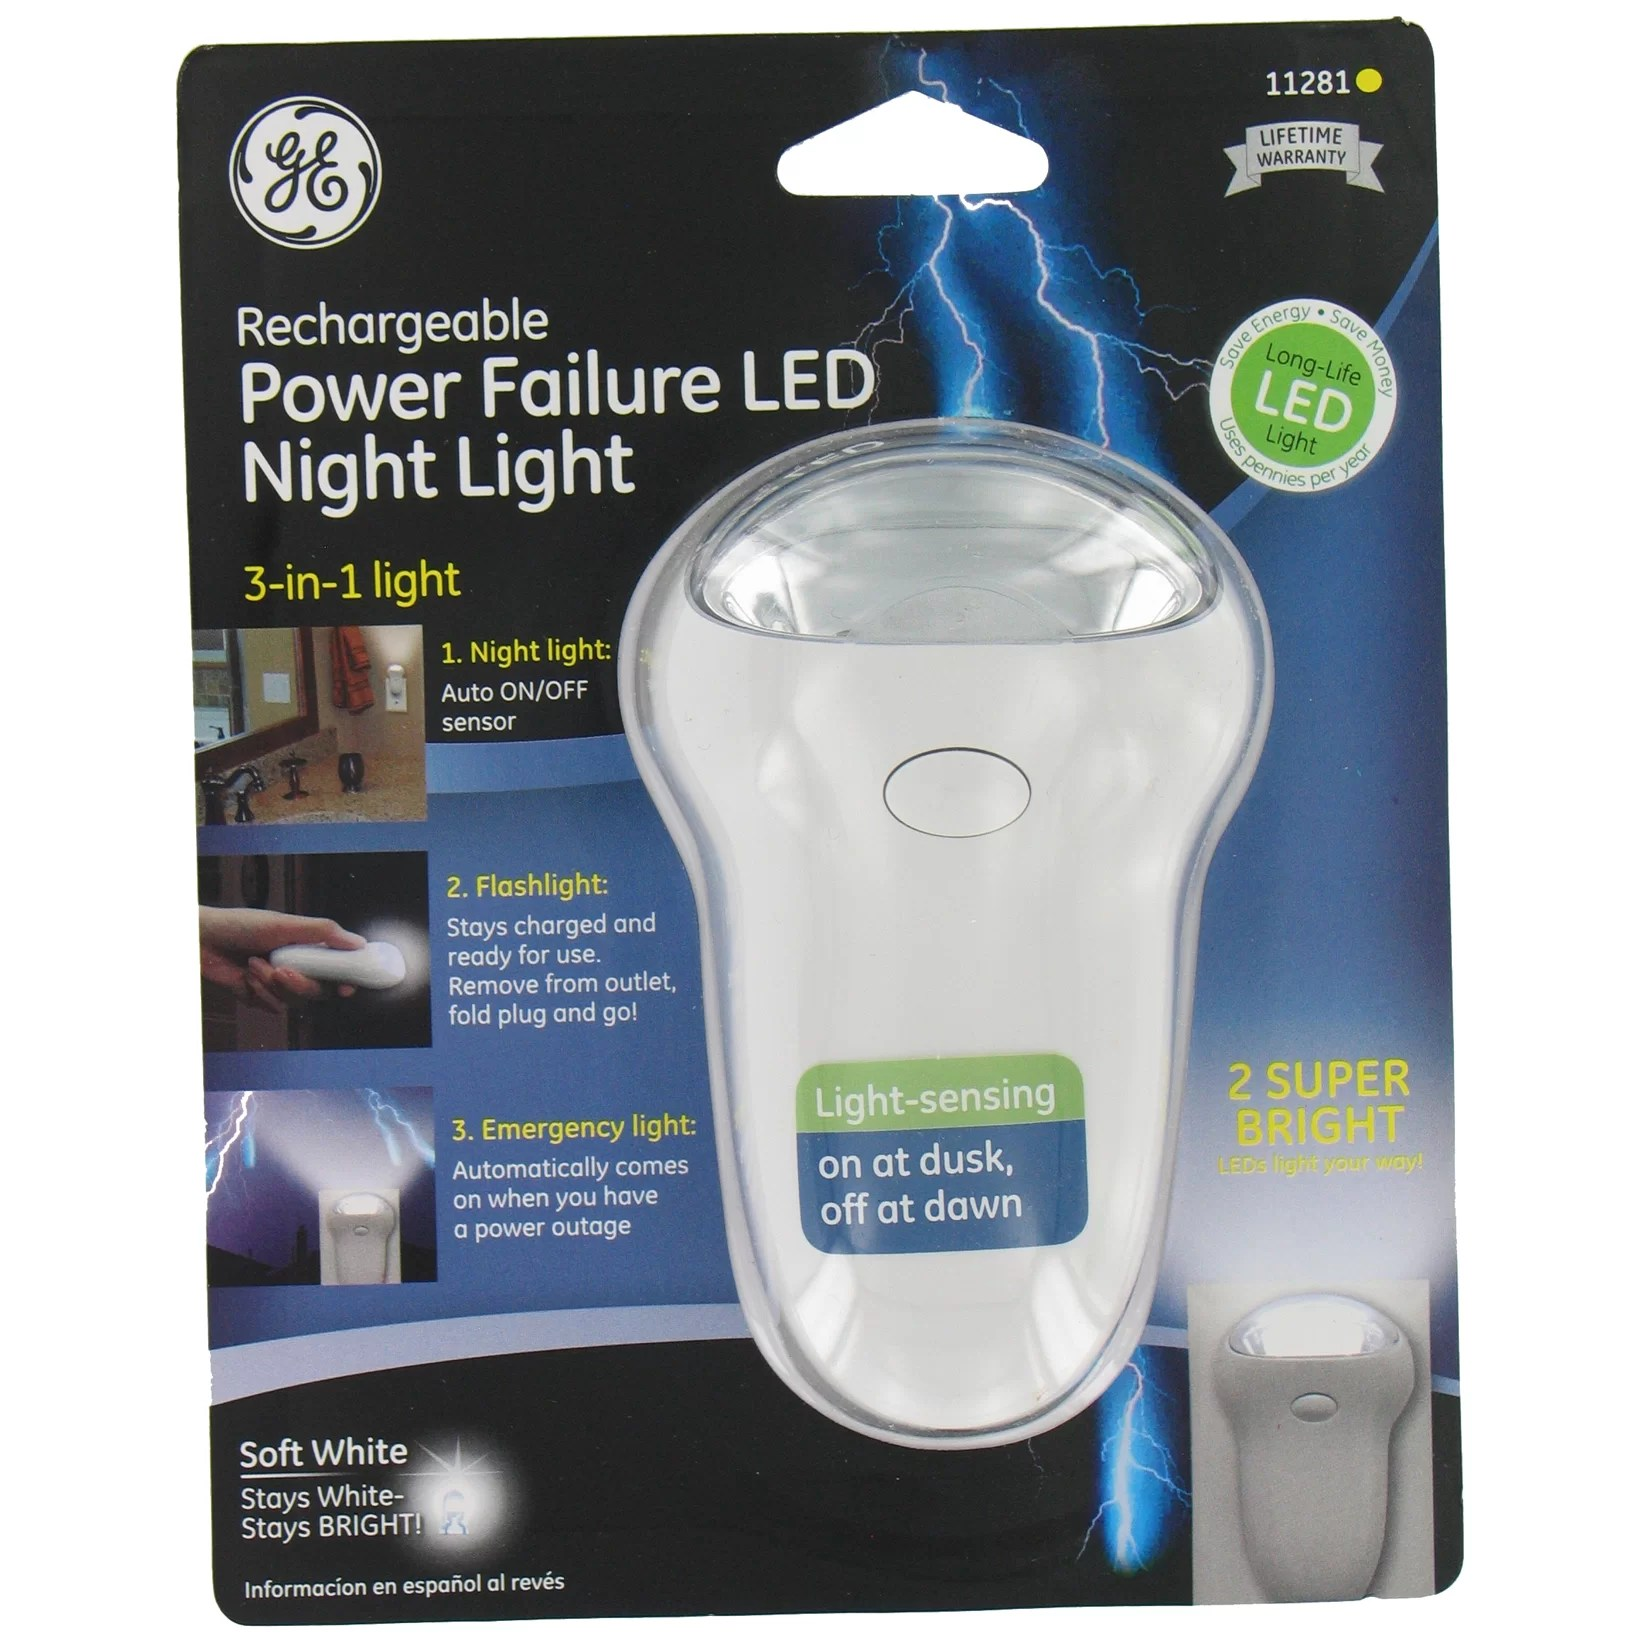 Rechargeable Night Lamp Jasco 3 In 1 Rechargeable Power Failure Led Night Light